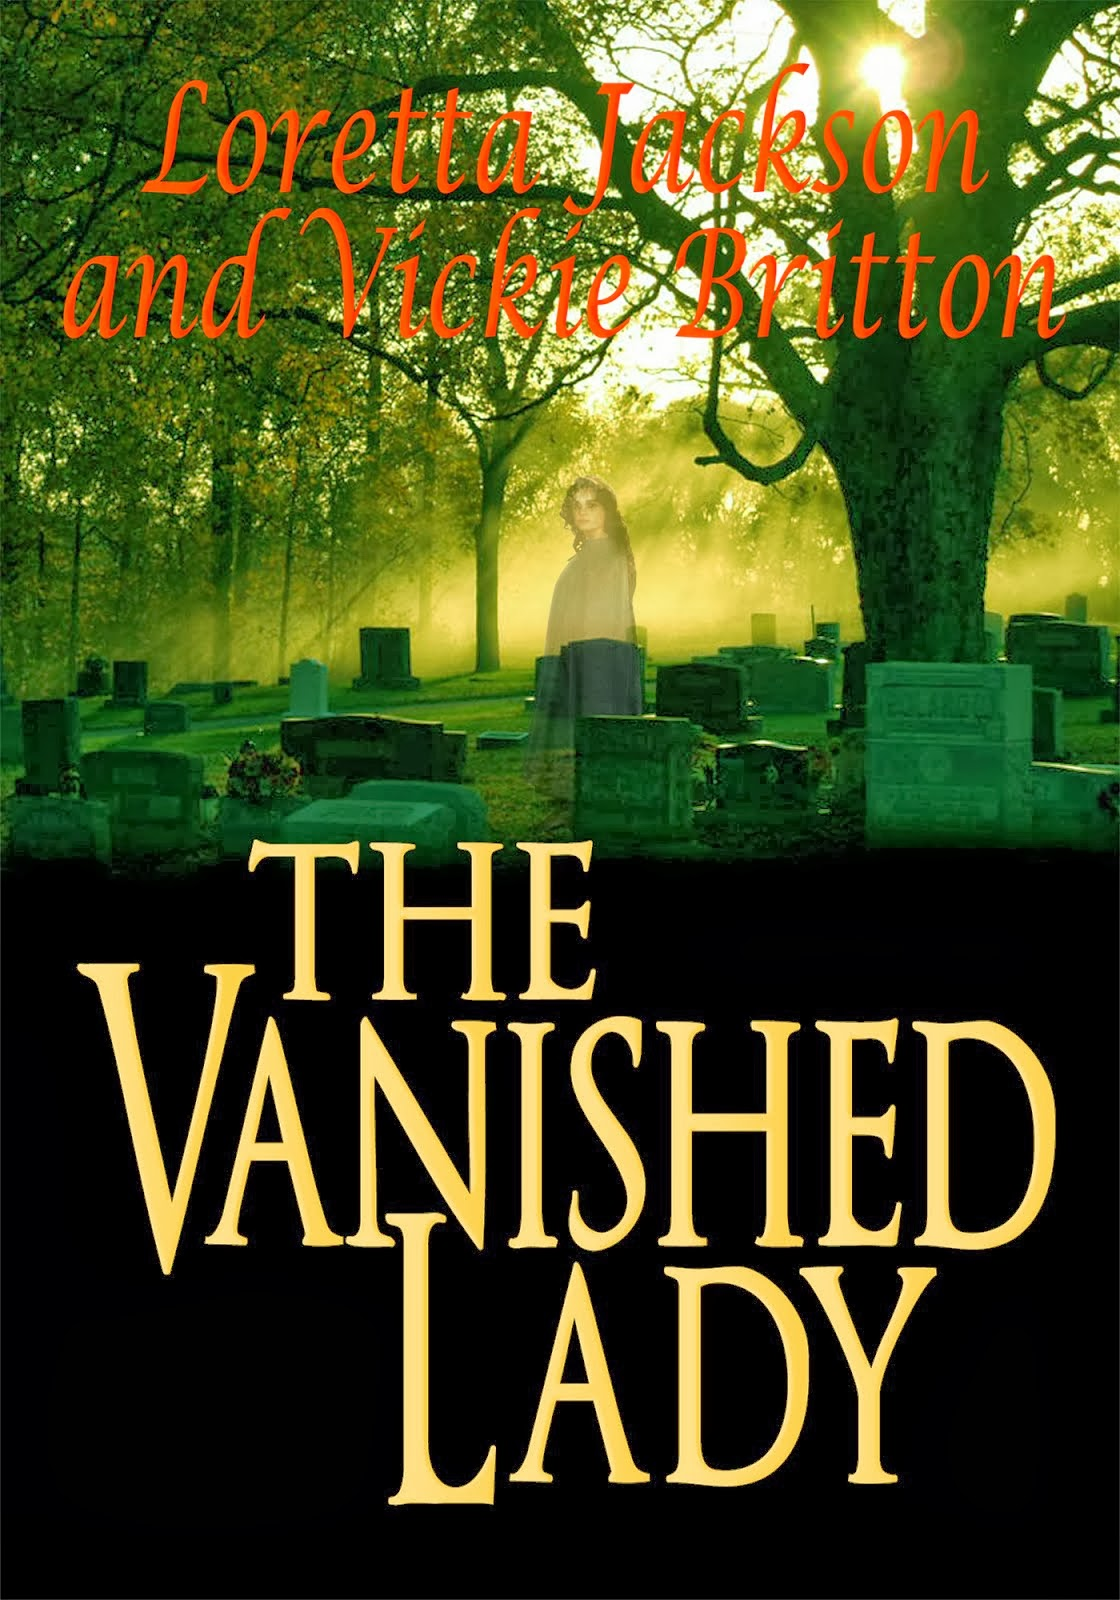 Print Copies of The Vanished Lady